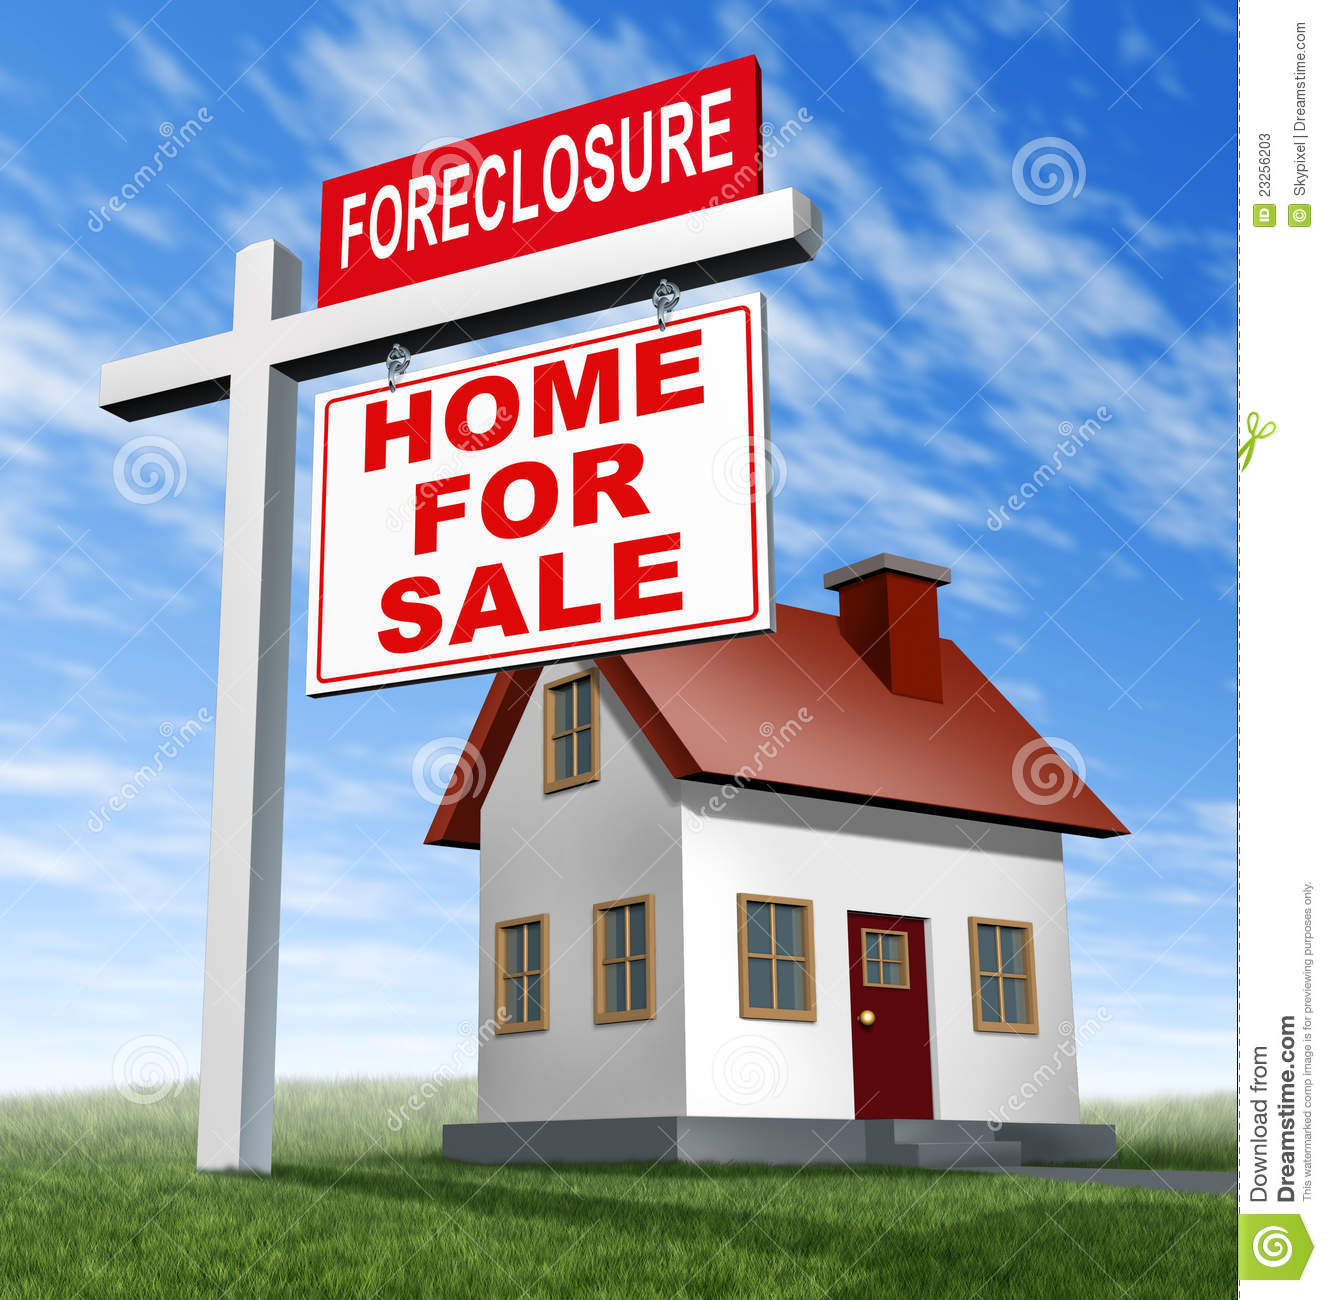 How to Start a Foreclosed Property Maintenance Business